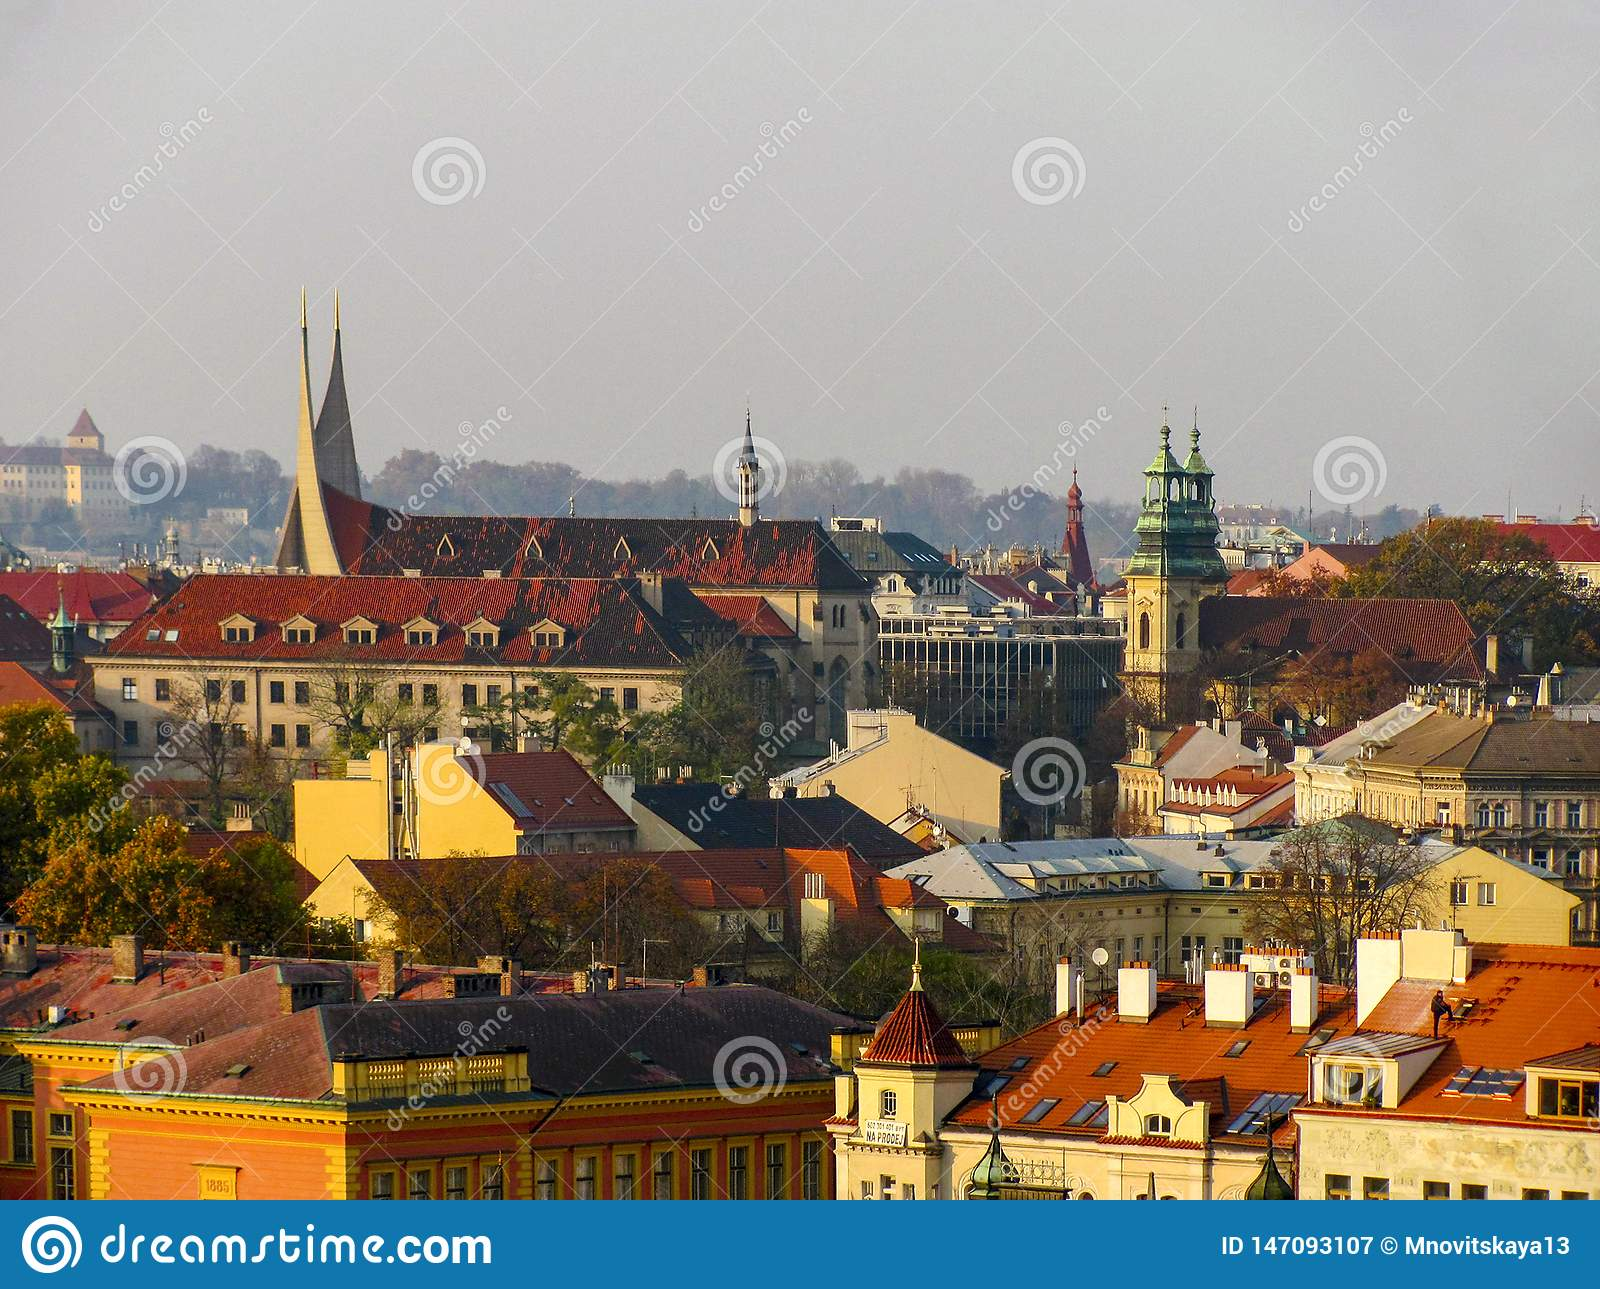 Cityscape of old Prague, tiled roofs of old houses